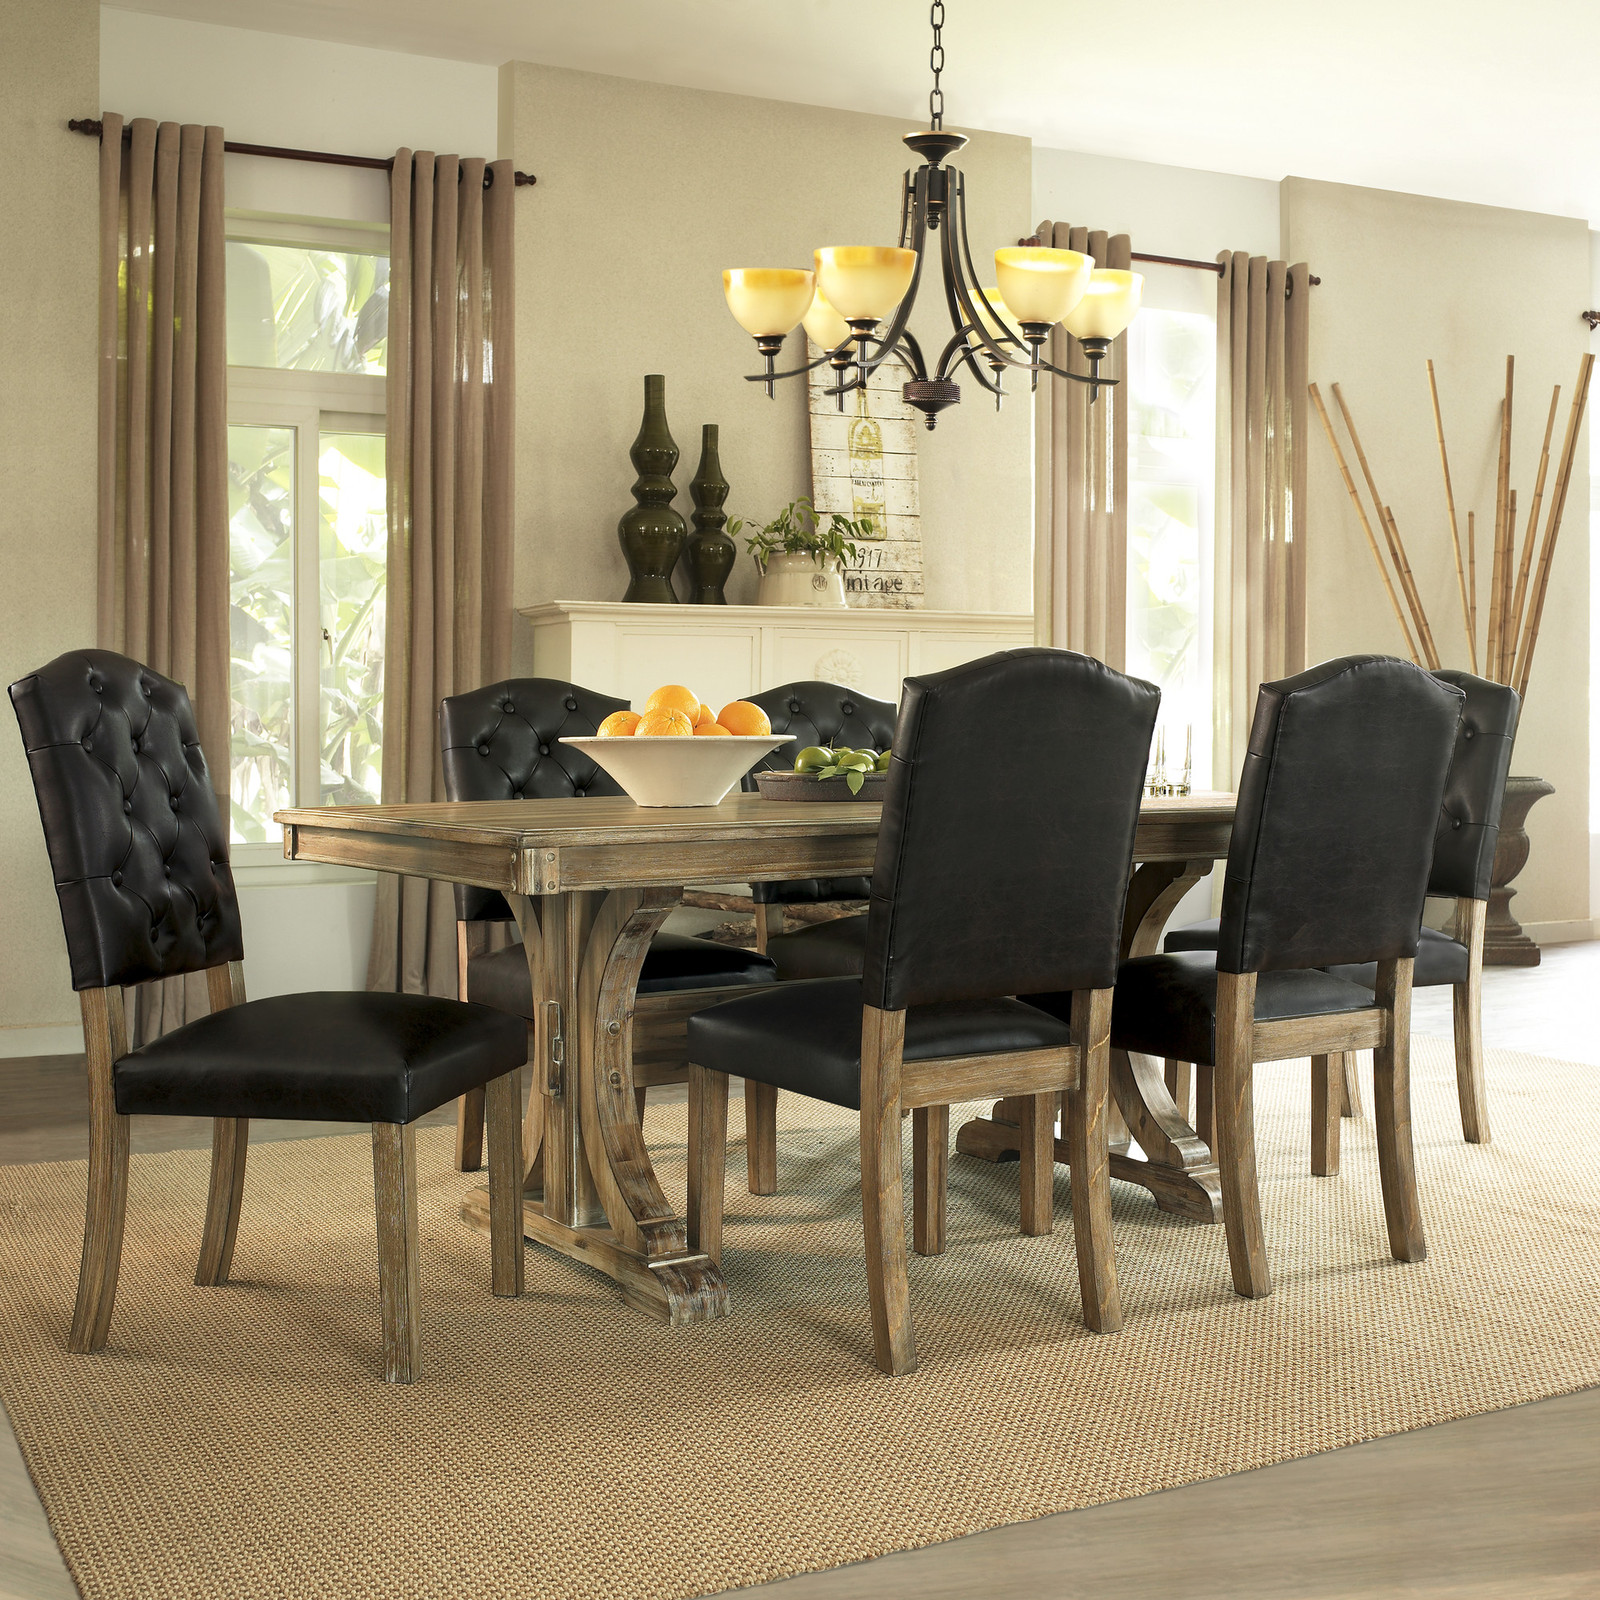 living dining room table chair entertainment furniture set dining